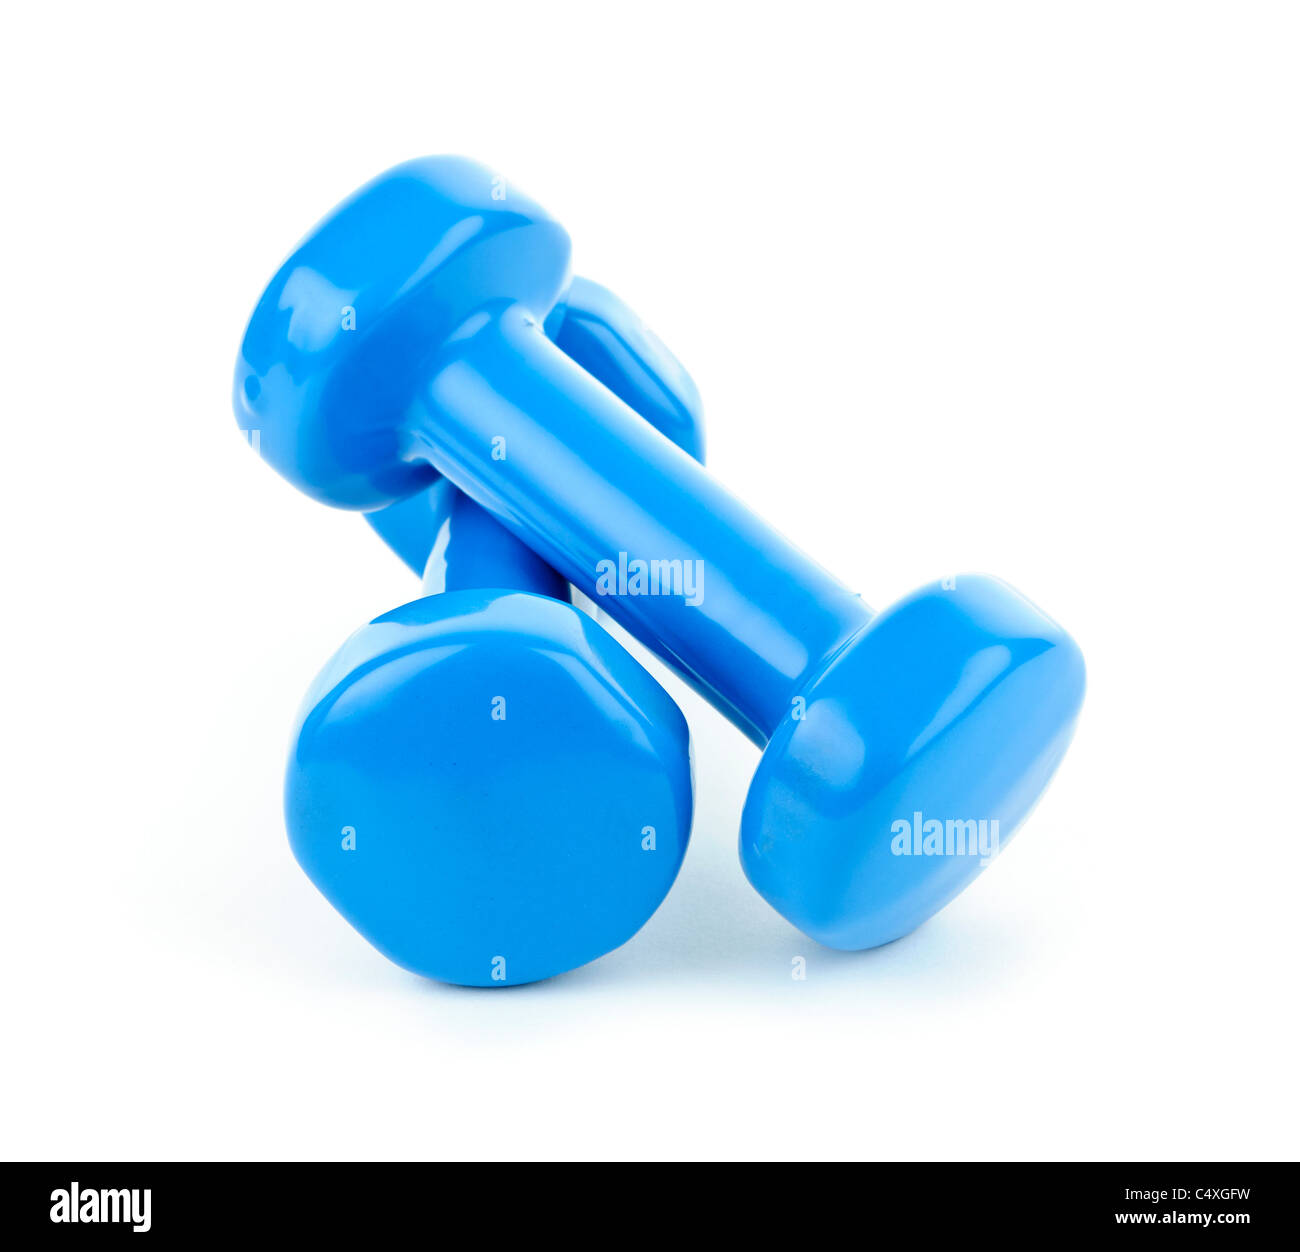 Two dumbbell free weights isolated on white background - Stock Image